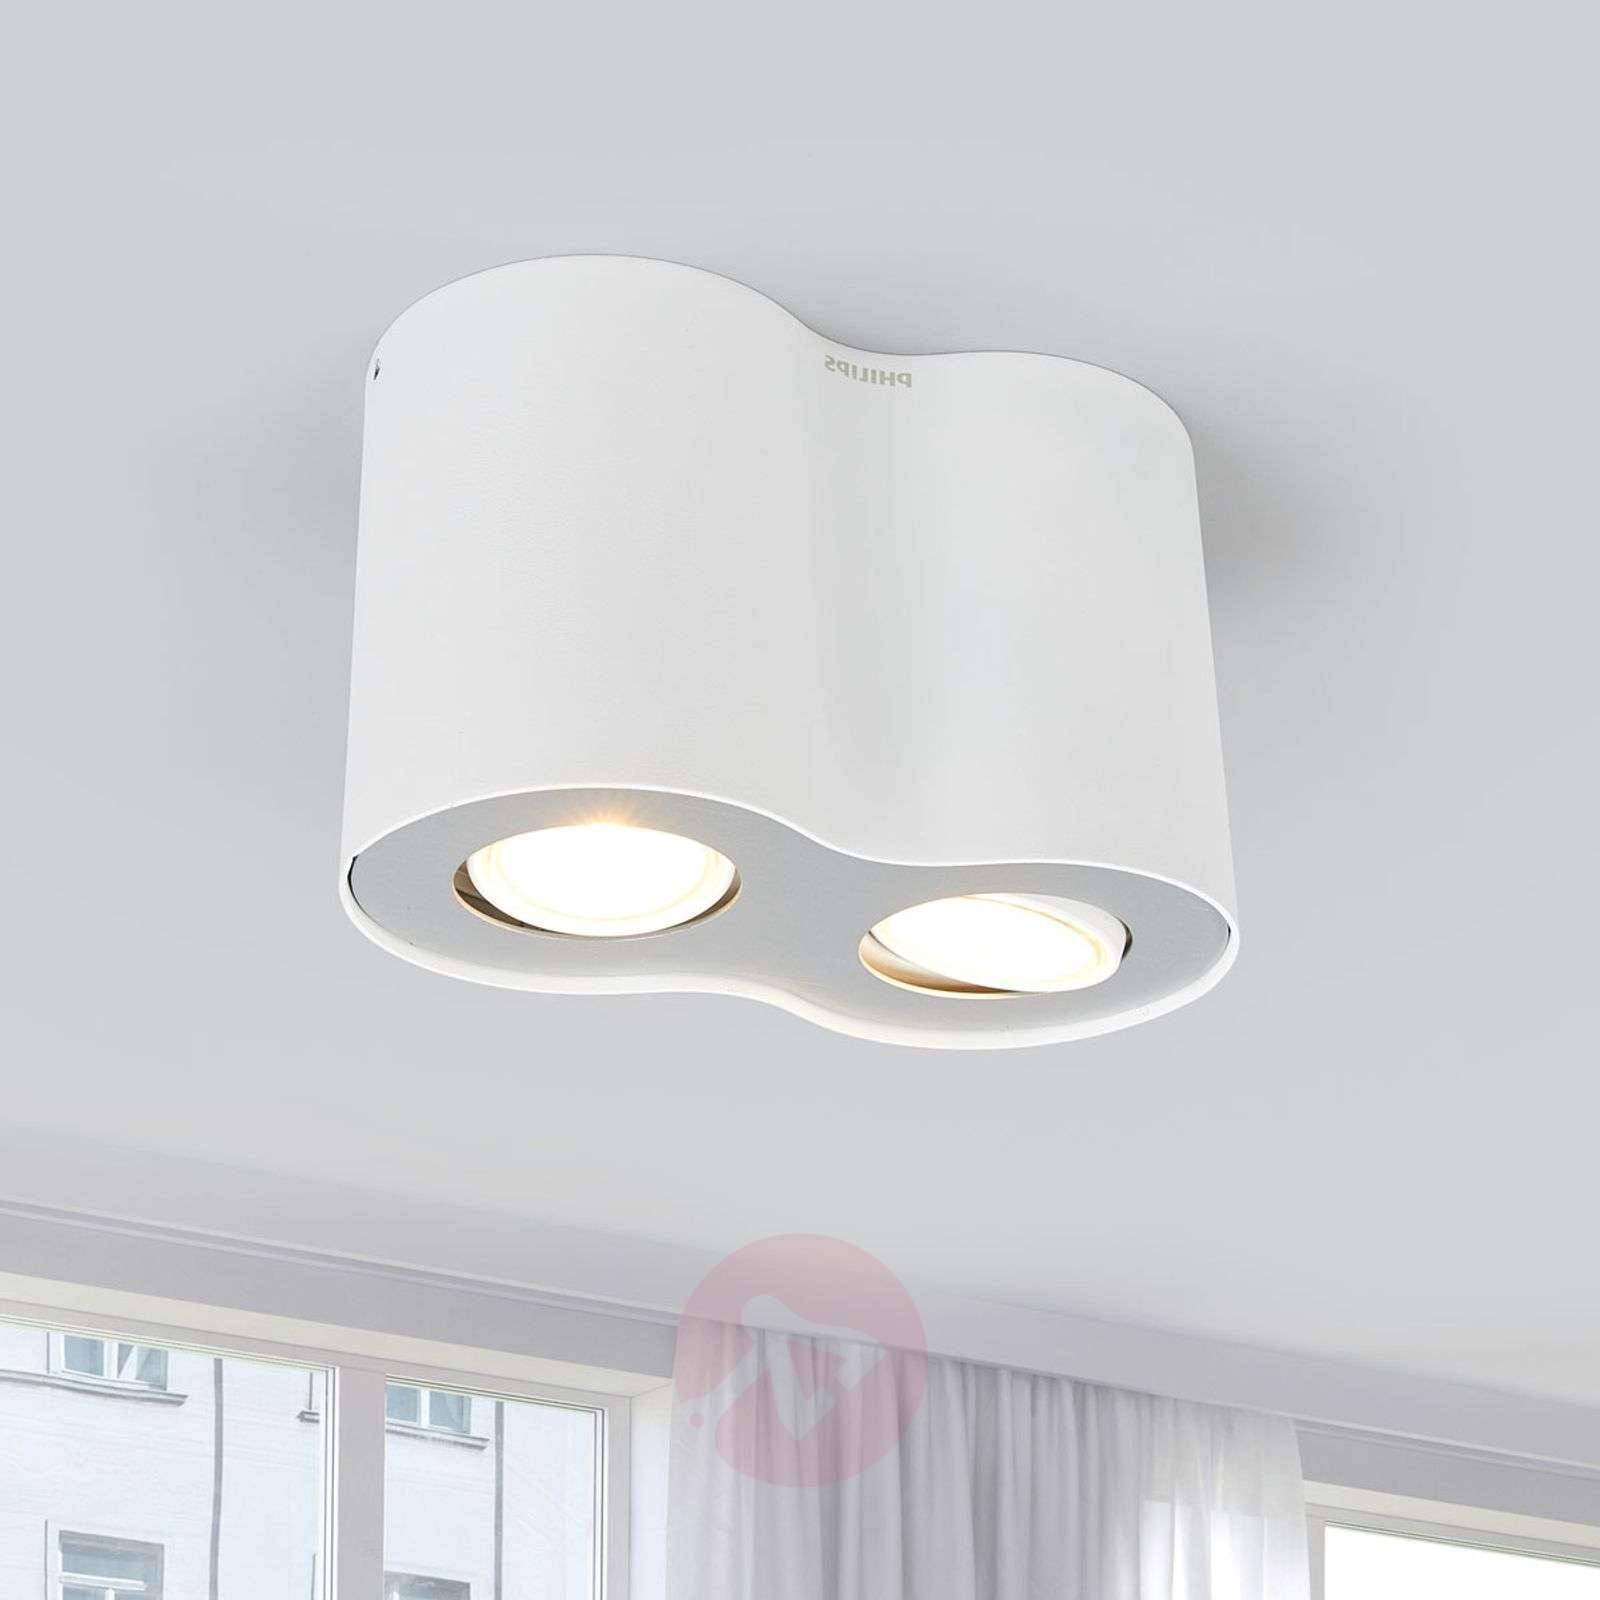 2 bulb led surface mounted ceiling light pillar lights 2 bulb led surface mounted ceiling light pillar 7531895 01 aloadofball Image collections